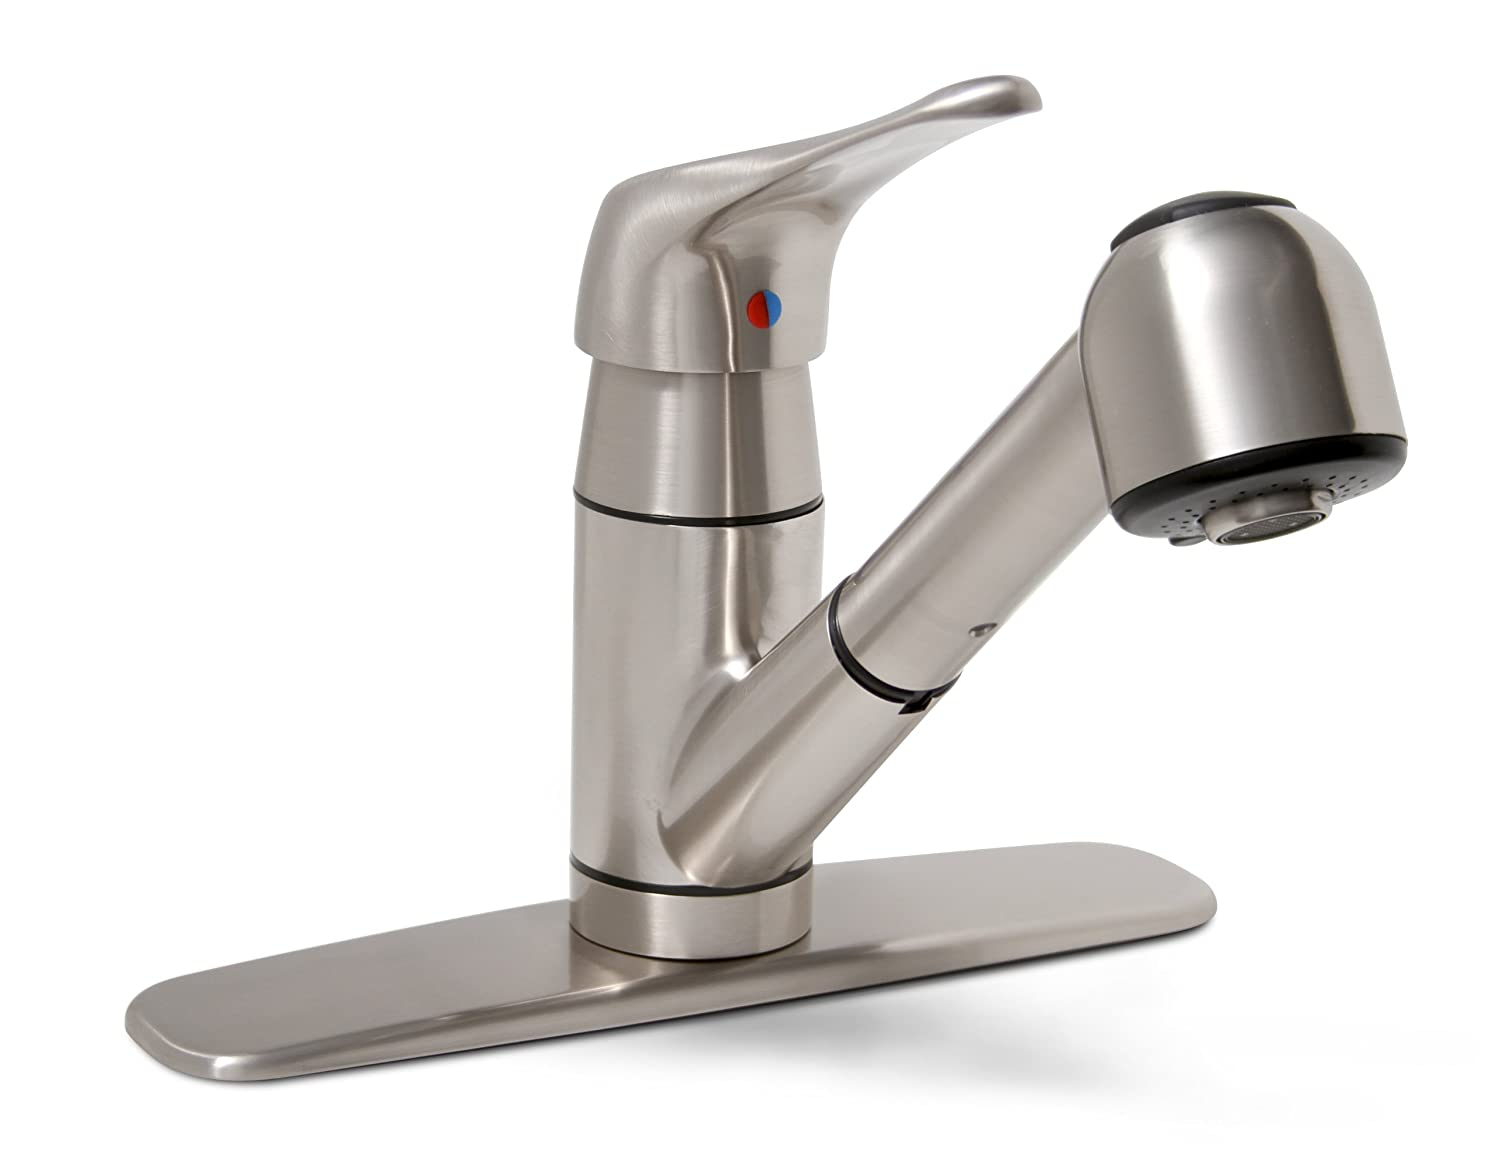 50 Best Kitchen Faucets: Top Rated Reviews & Ratings